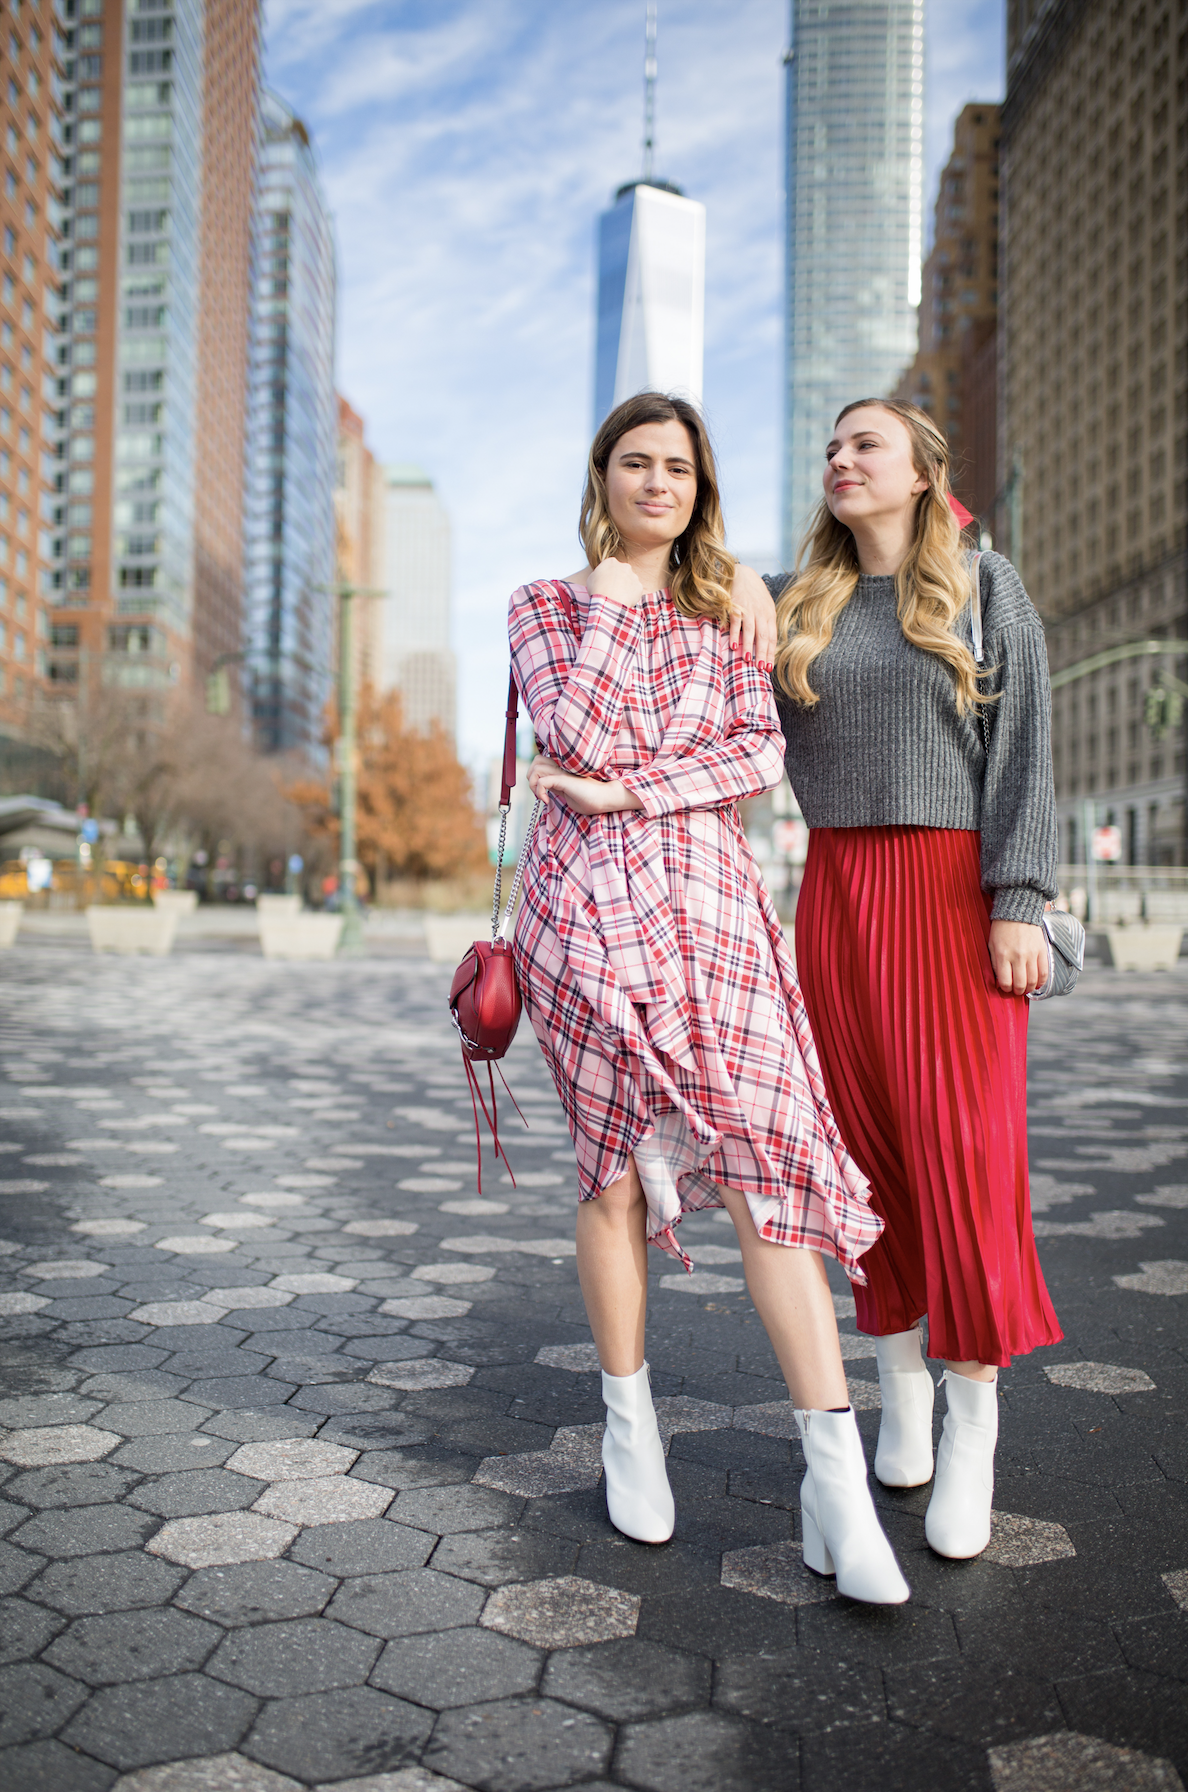 Red Pleated Skirt Outfit Plaid Midi Dress Outfit Holiday Outfit Ideas Christmas Dresses Christmas Outfit Ideas Nyc Street Style Winter Holiday Party [ 1792 x 1188 Pixel ]